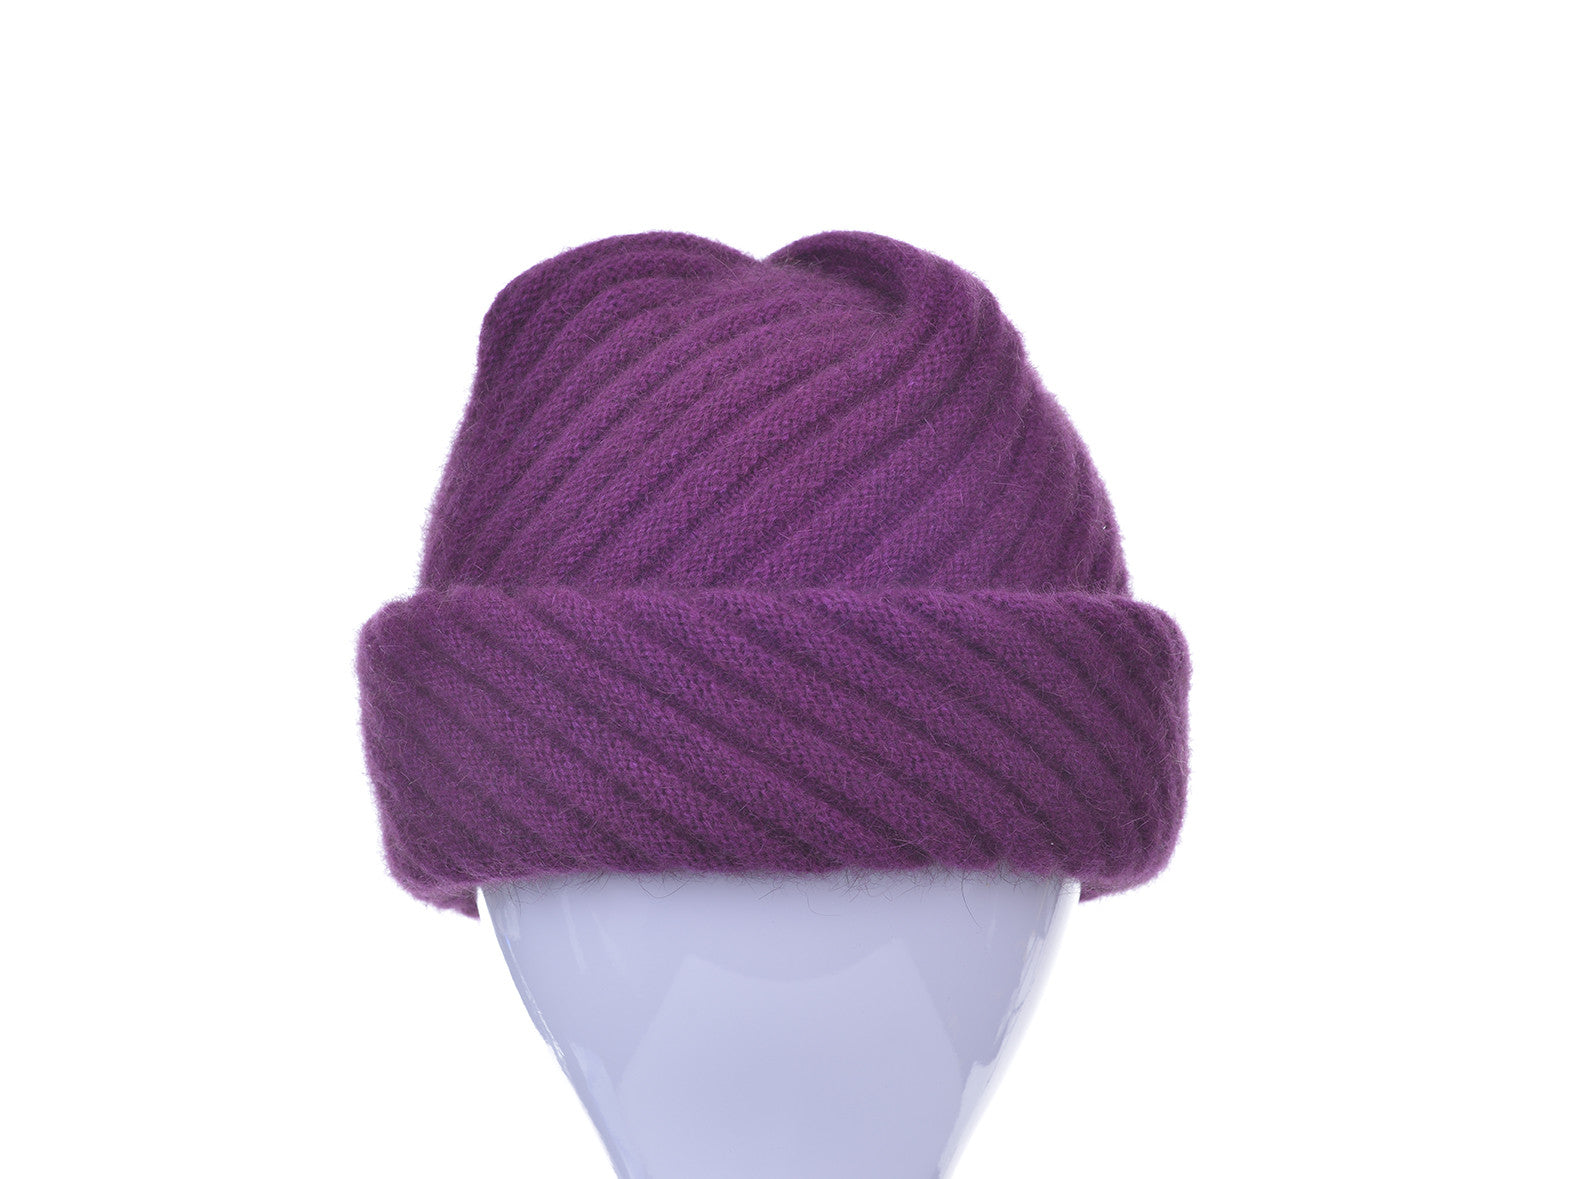 687dde2e634 Possum Merino Rib Hat with Pleated Top - McDonald Textiles